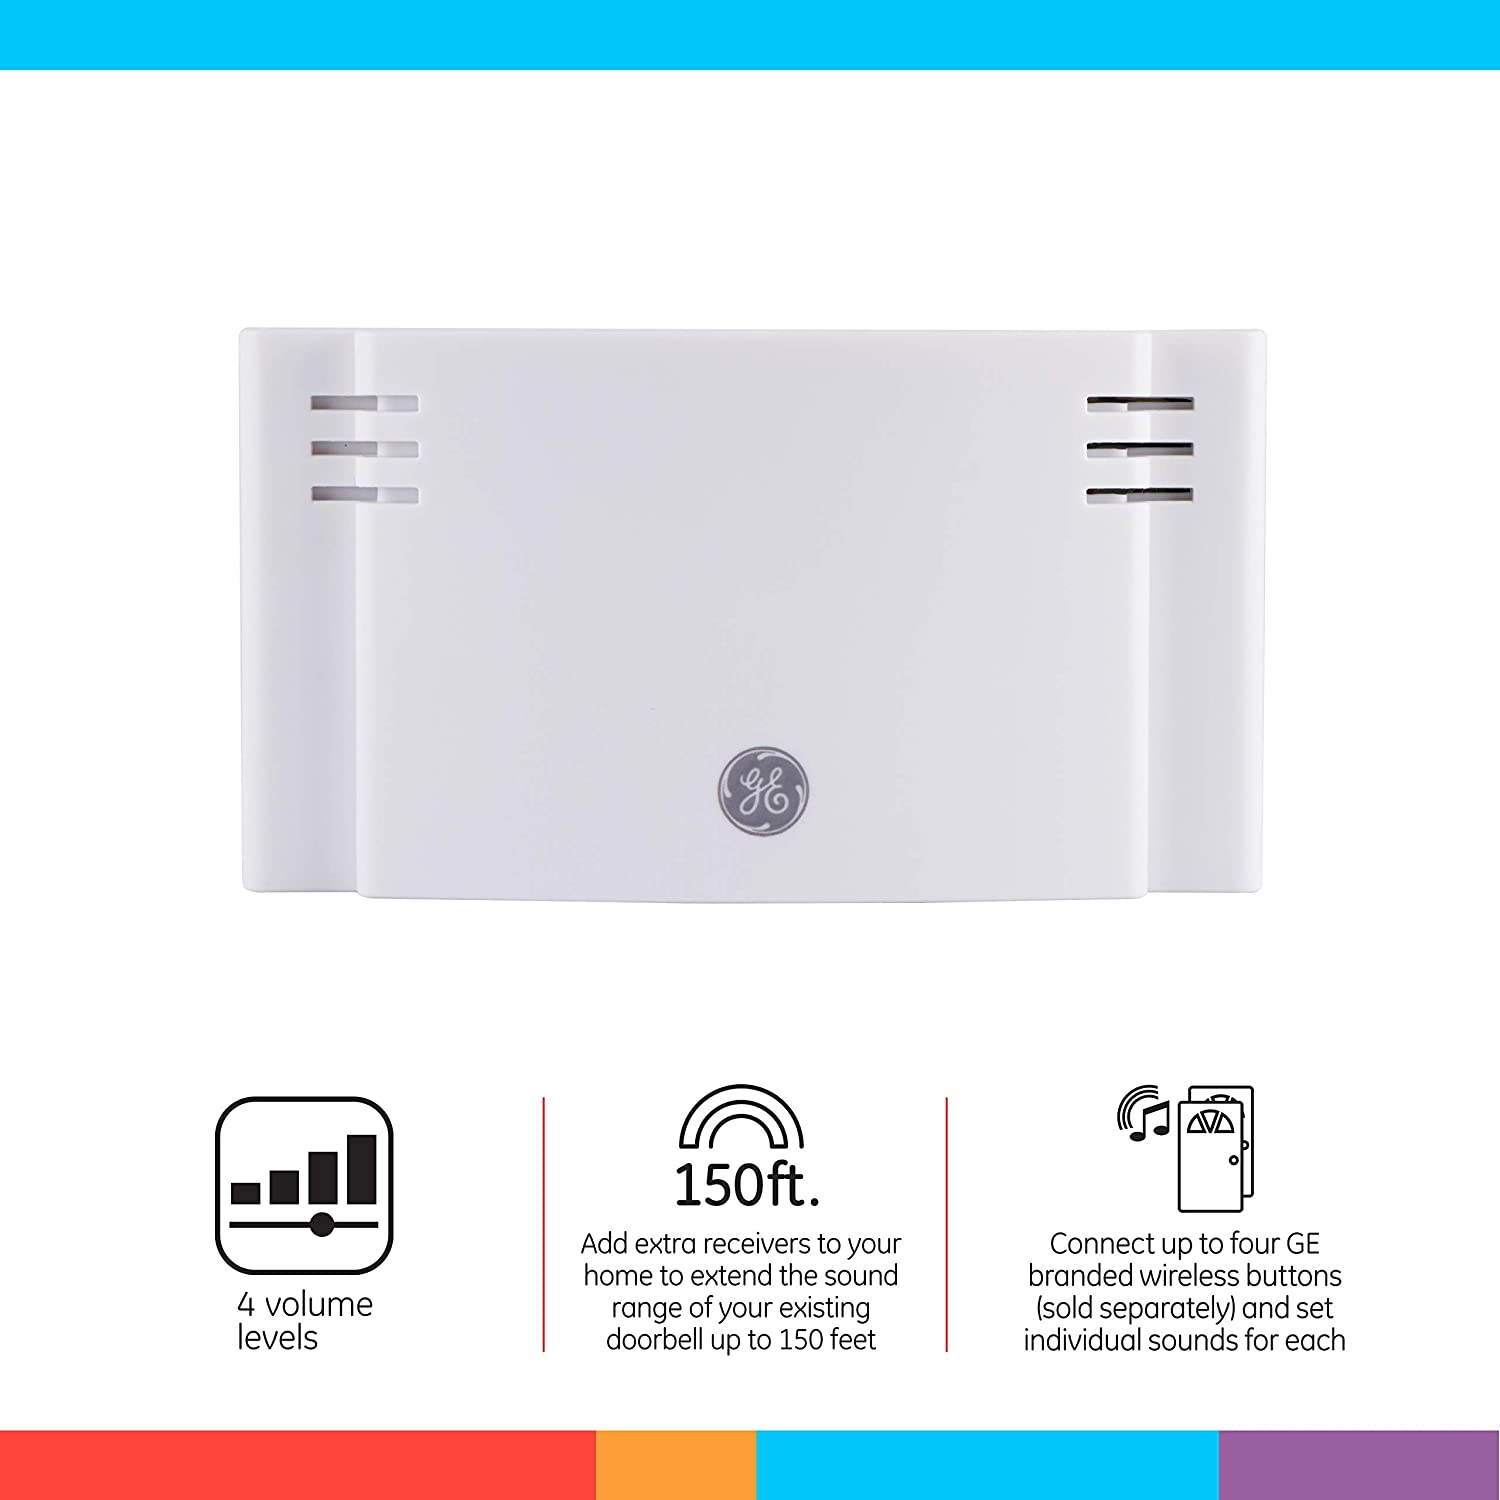 1 Receiver 19297 150-Foot Range 8 Chime Melodies White GE Wireless Doorbell Kit 2 Push Buttons Battery-Operated